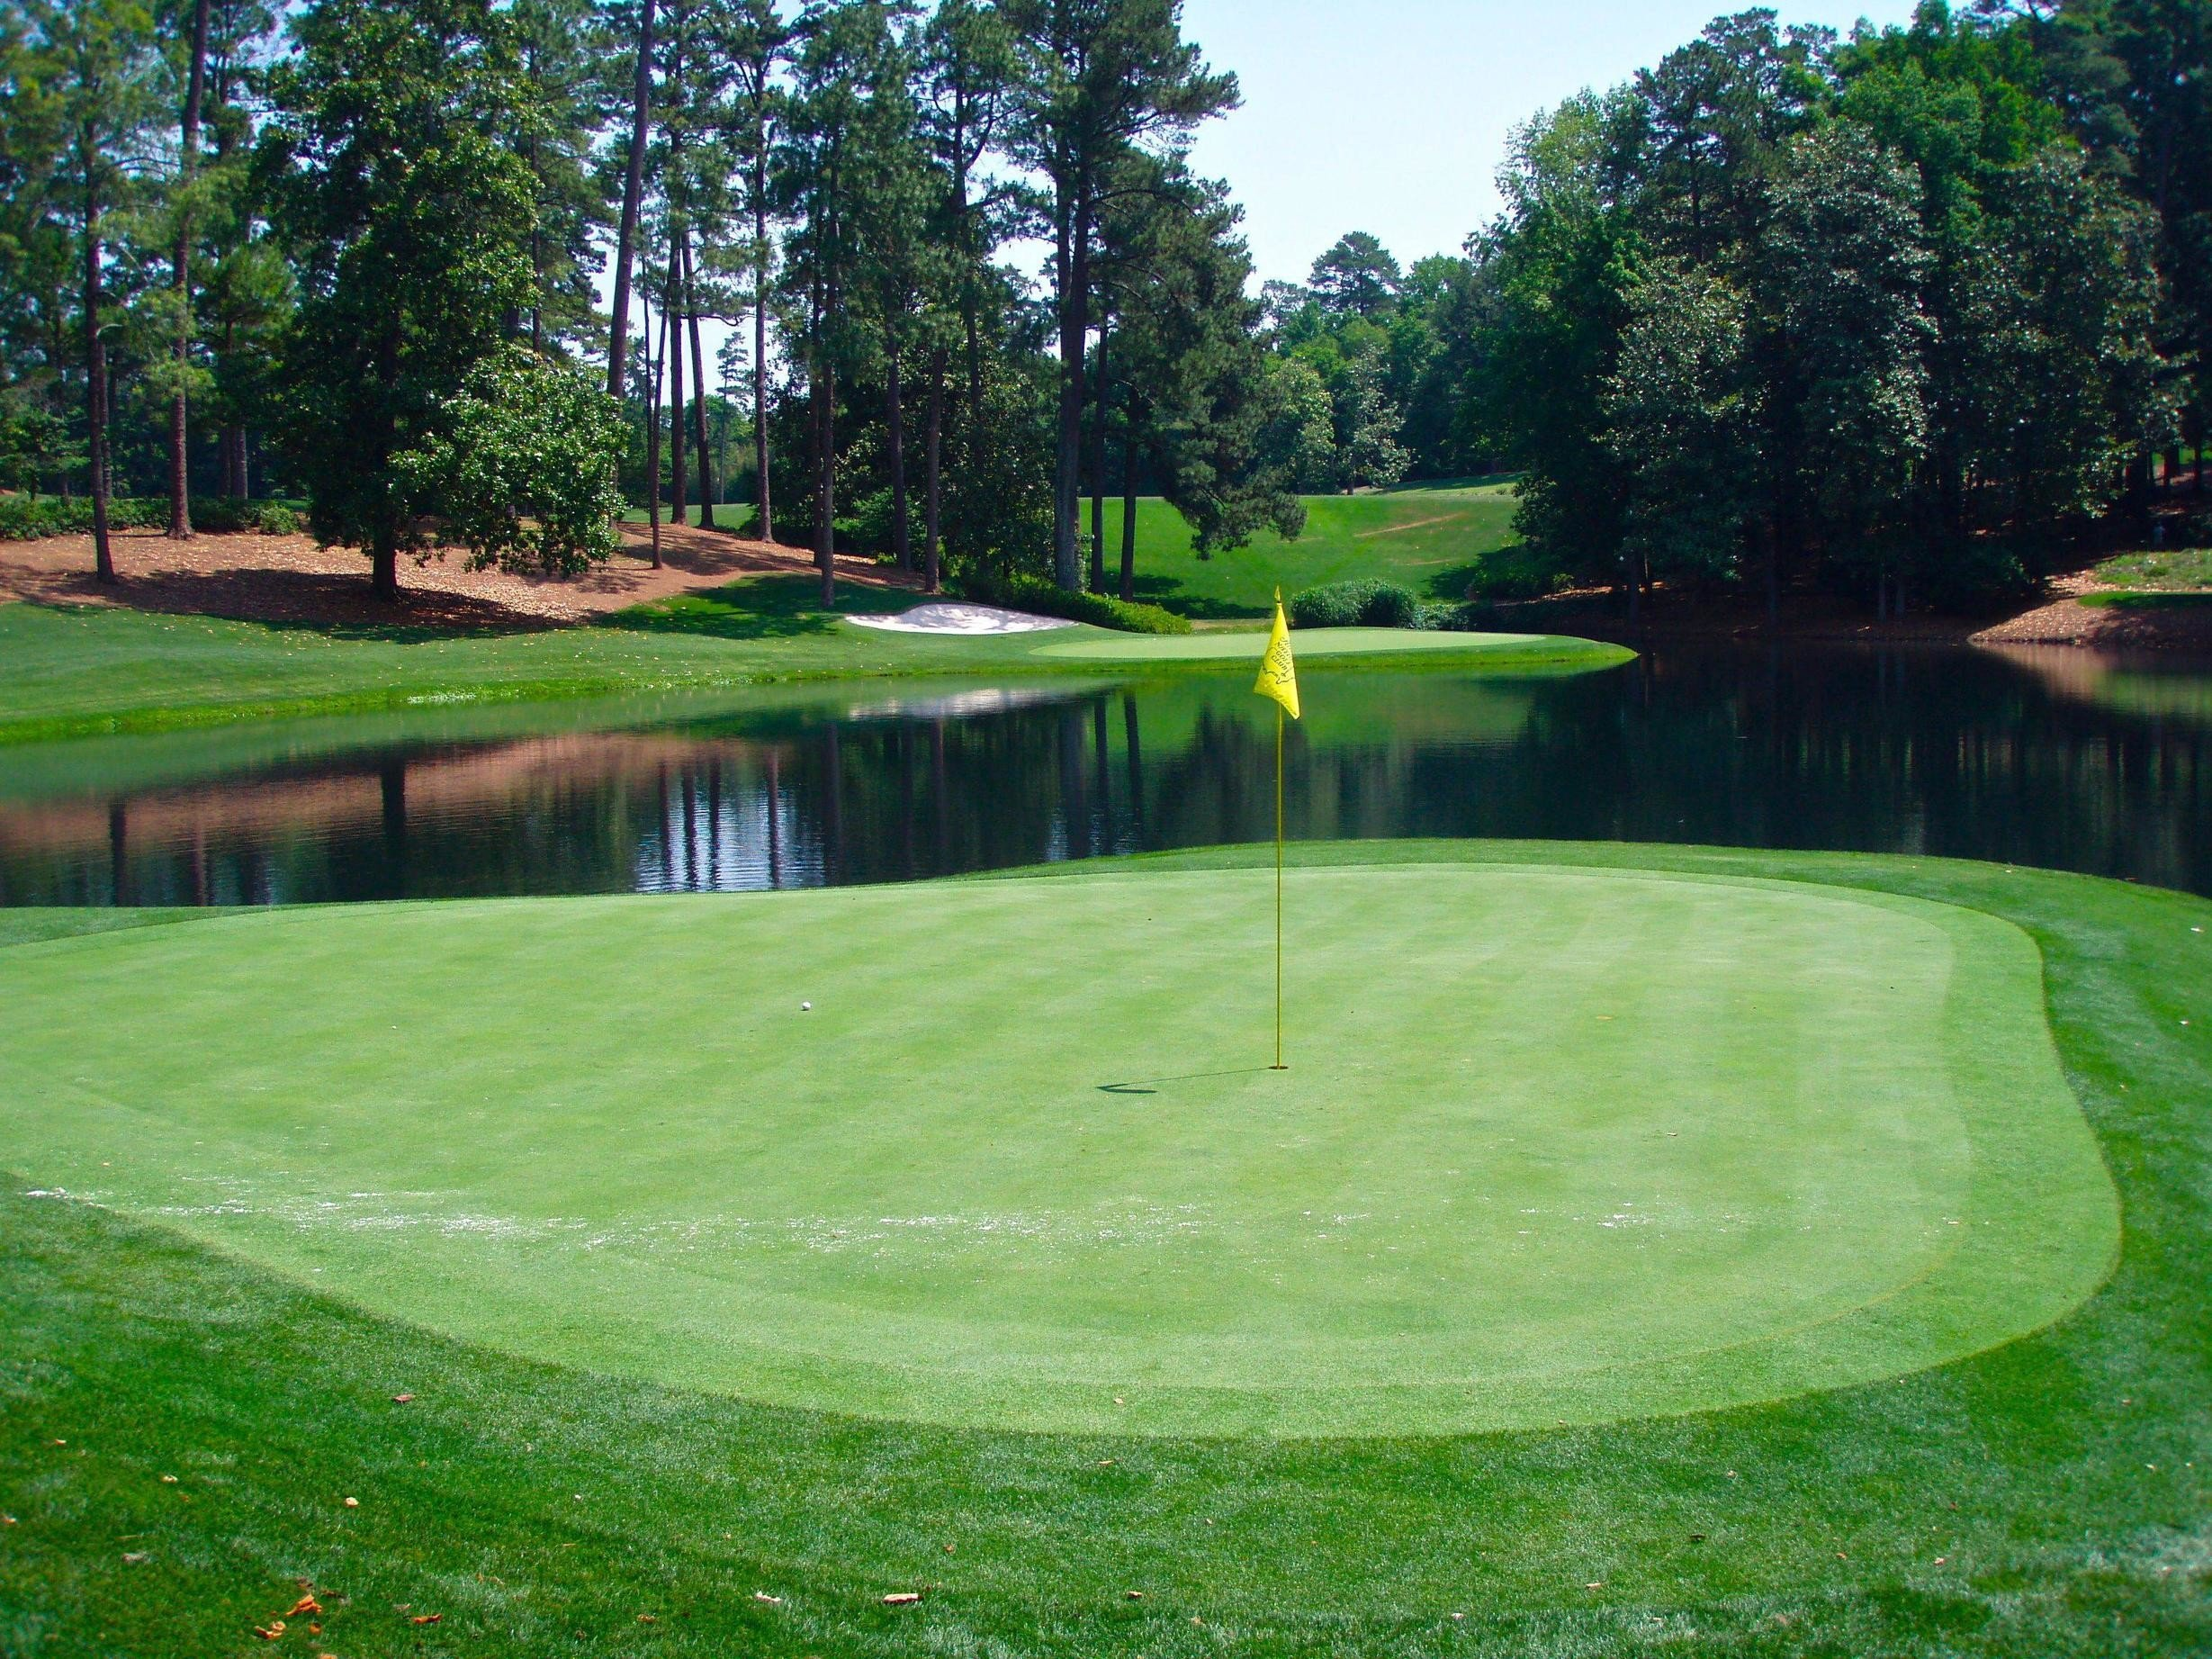 Augusta National Wallpaper HD 60 images 2458x1843